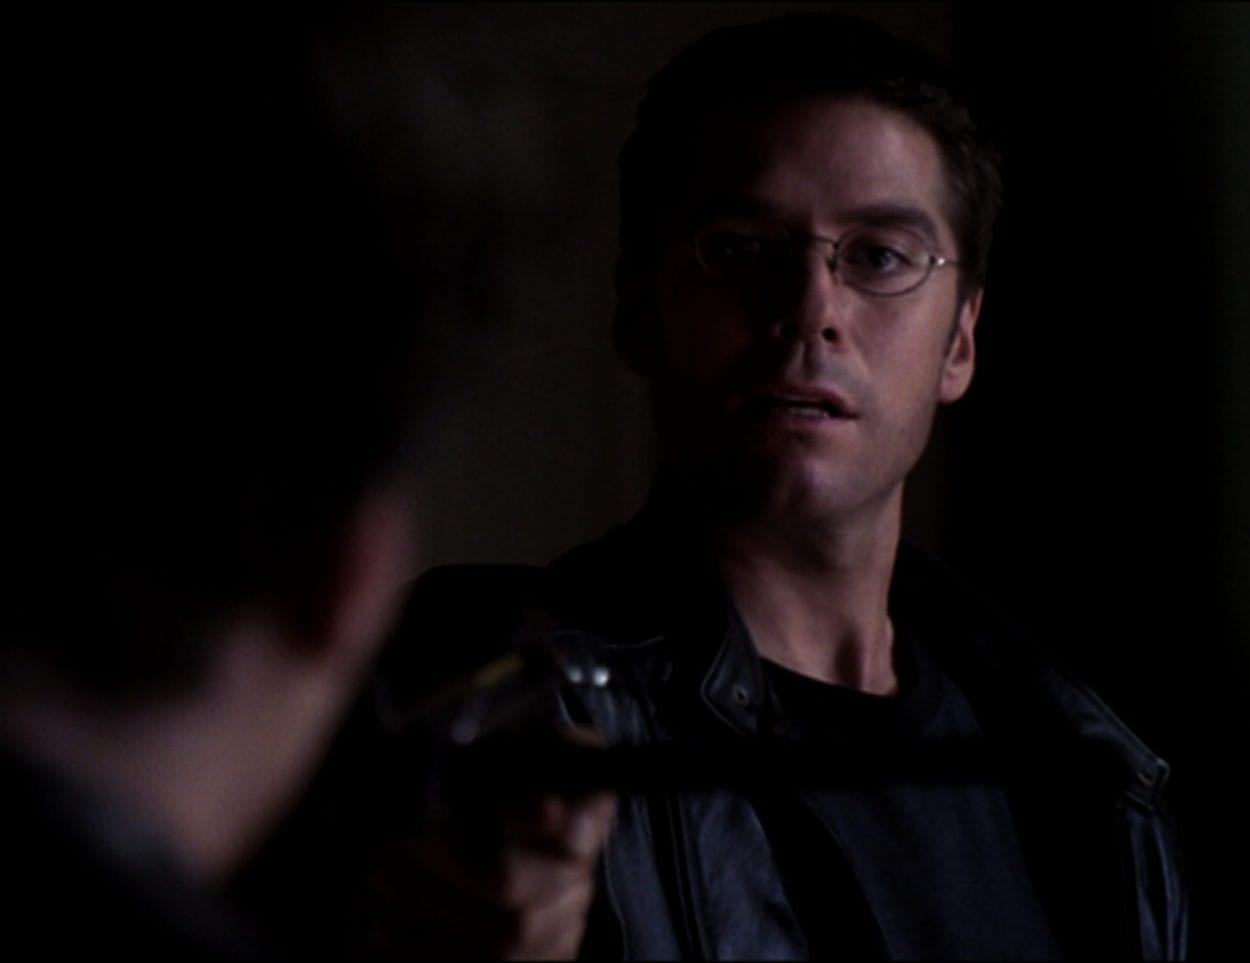 Wesley, wearing a leather jacket, points a crossbow at Angel